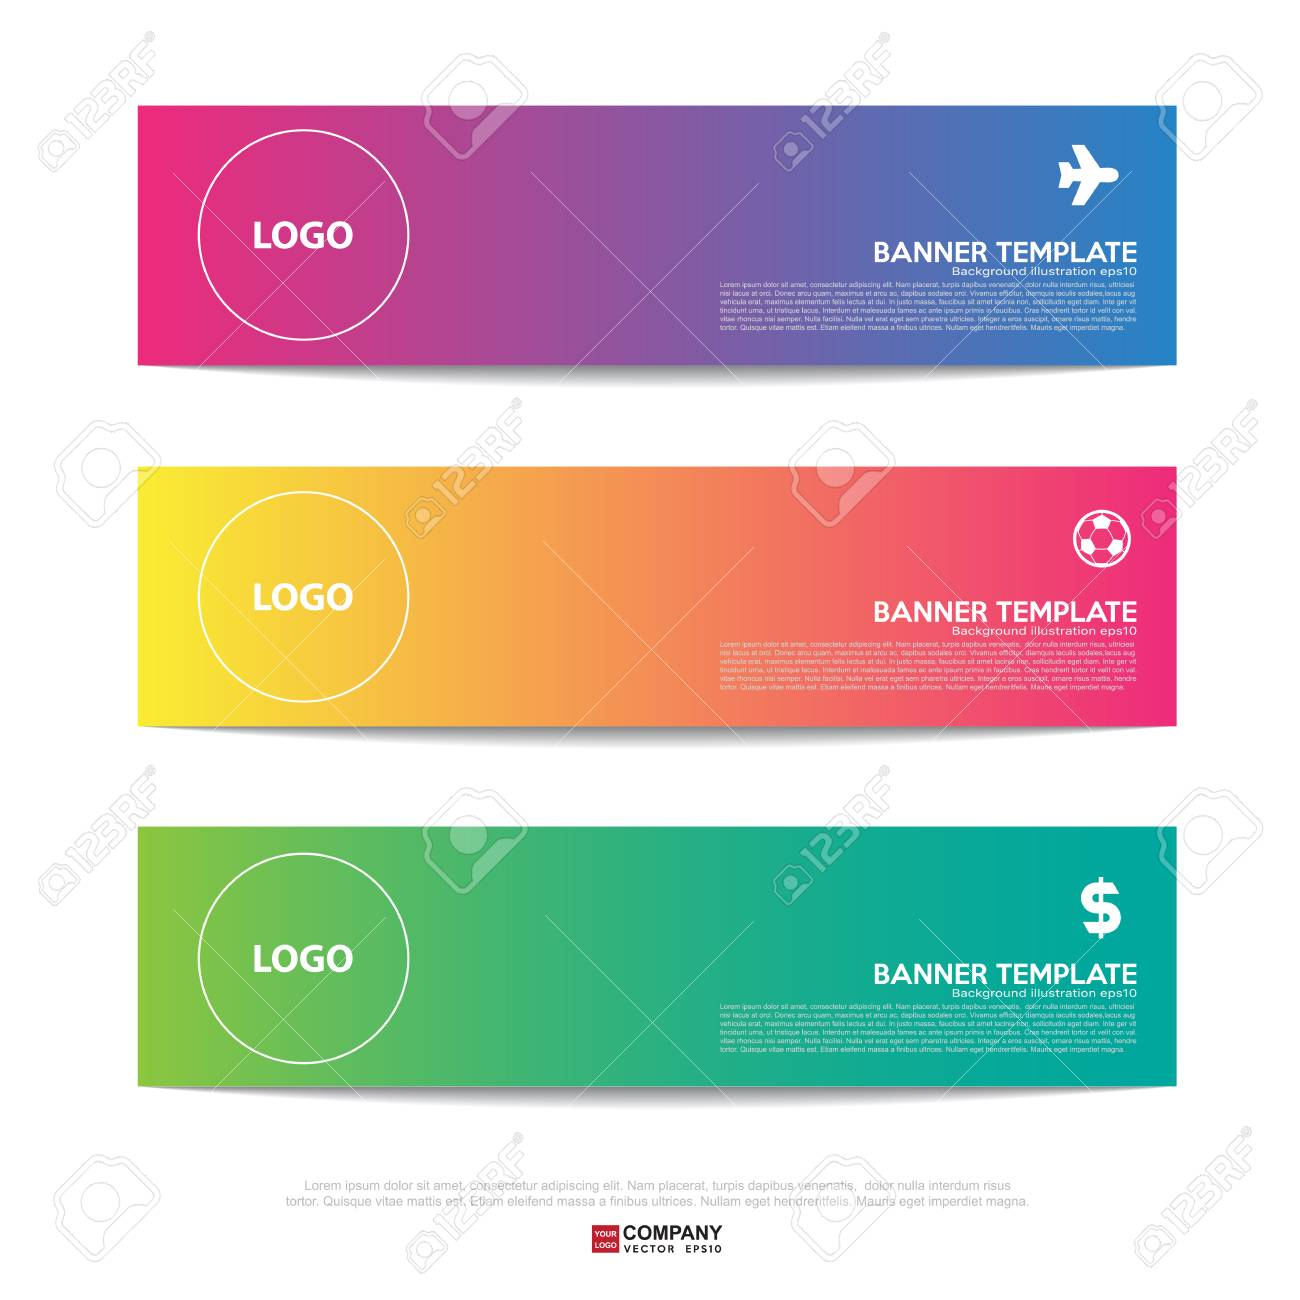 Design of flyers banners brochures and cards templatebanner design of flyers banners brochures and cards templatebanner design for business presentation flashek